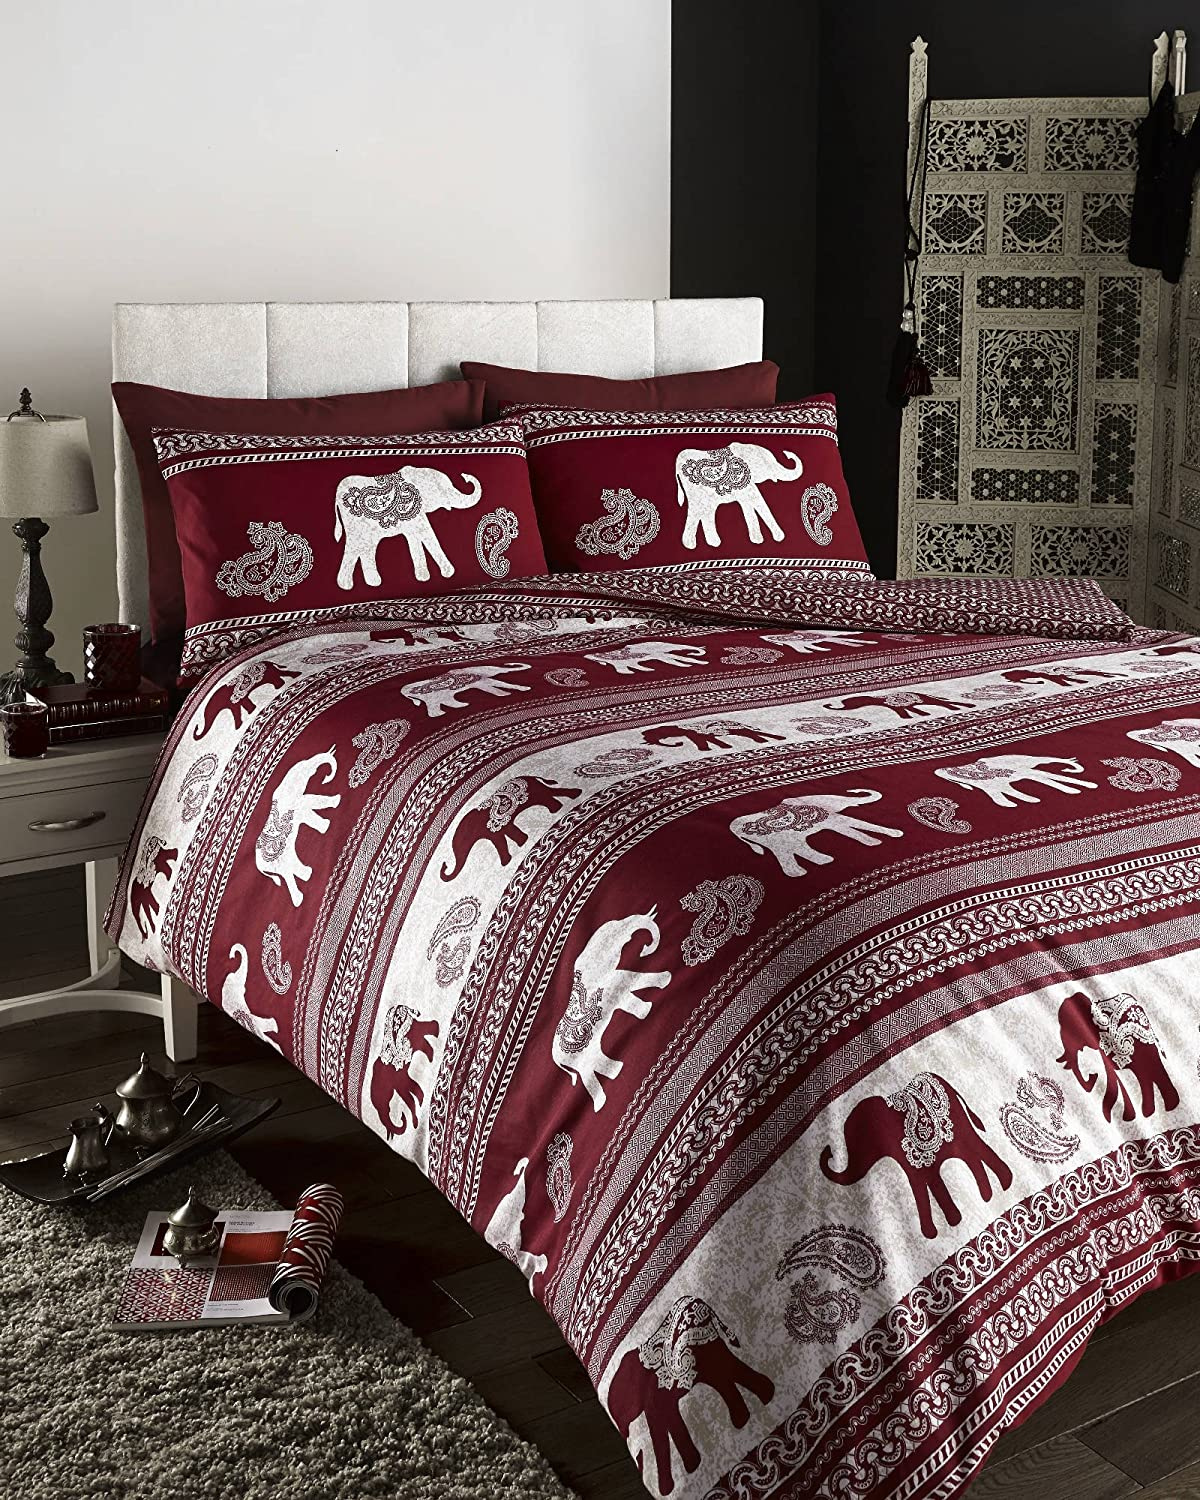 ethnic indian style printed duvet cover bed sets (red double  - ethnic indian style printed duvet cover bed sets (red double)amazoncouk kitchen  home